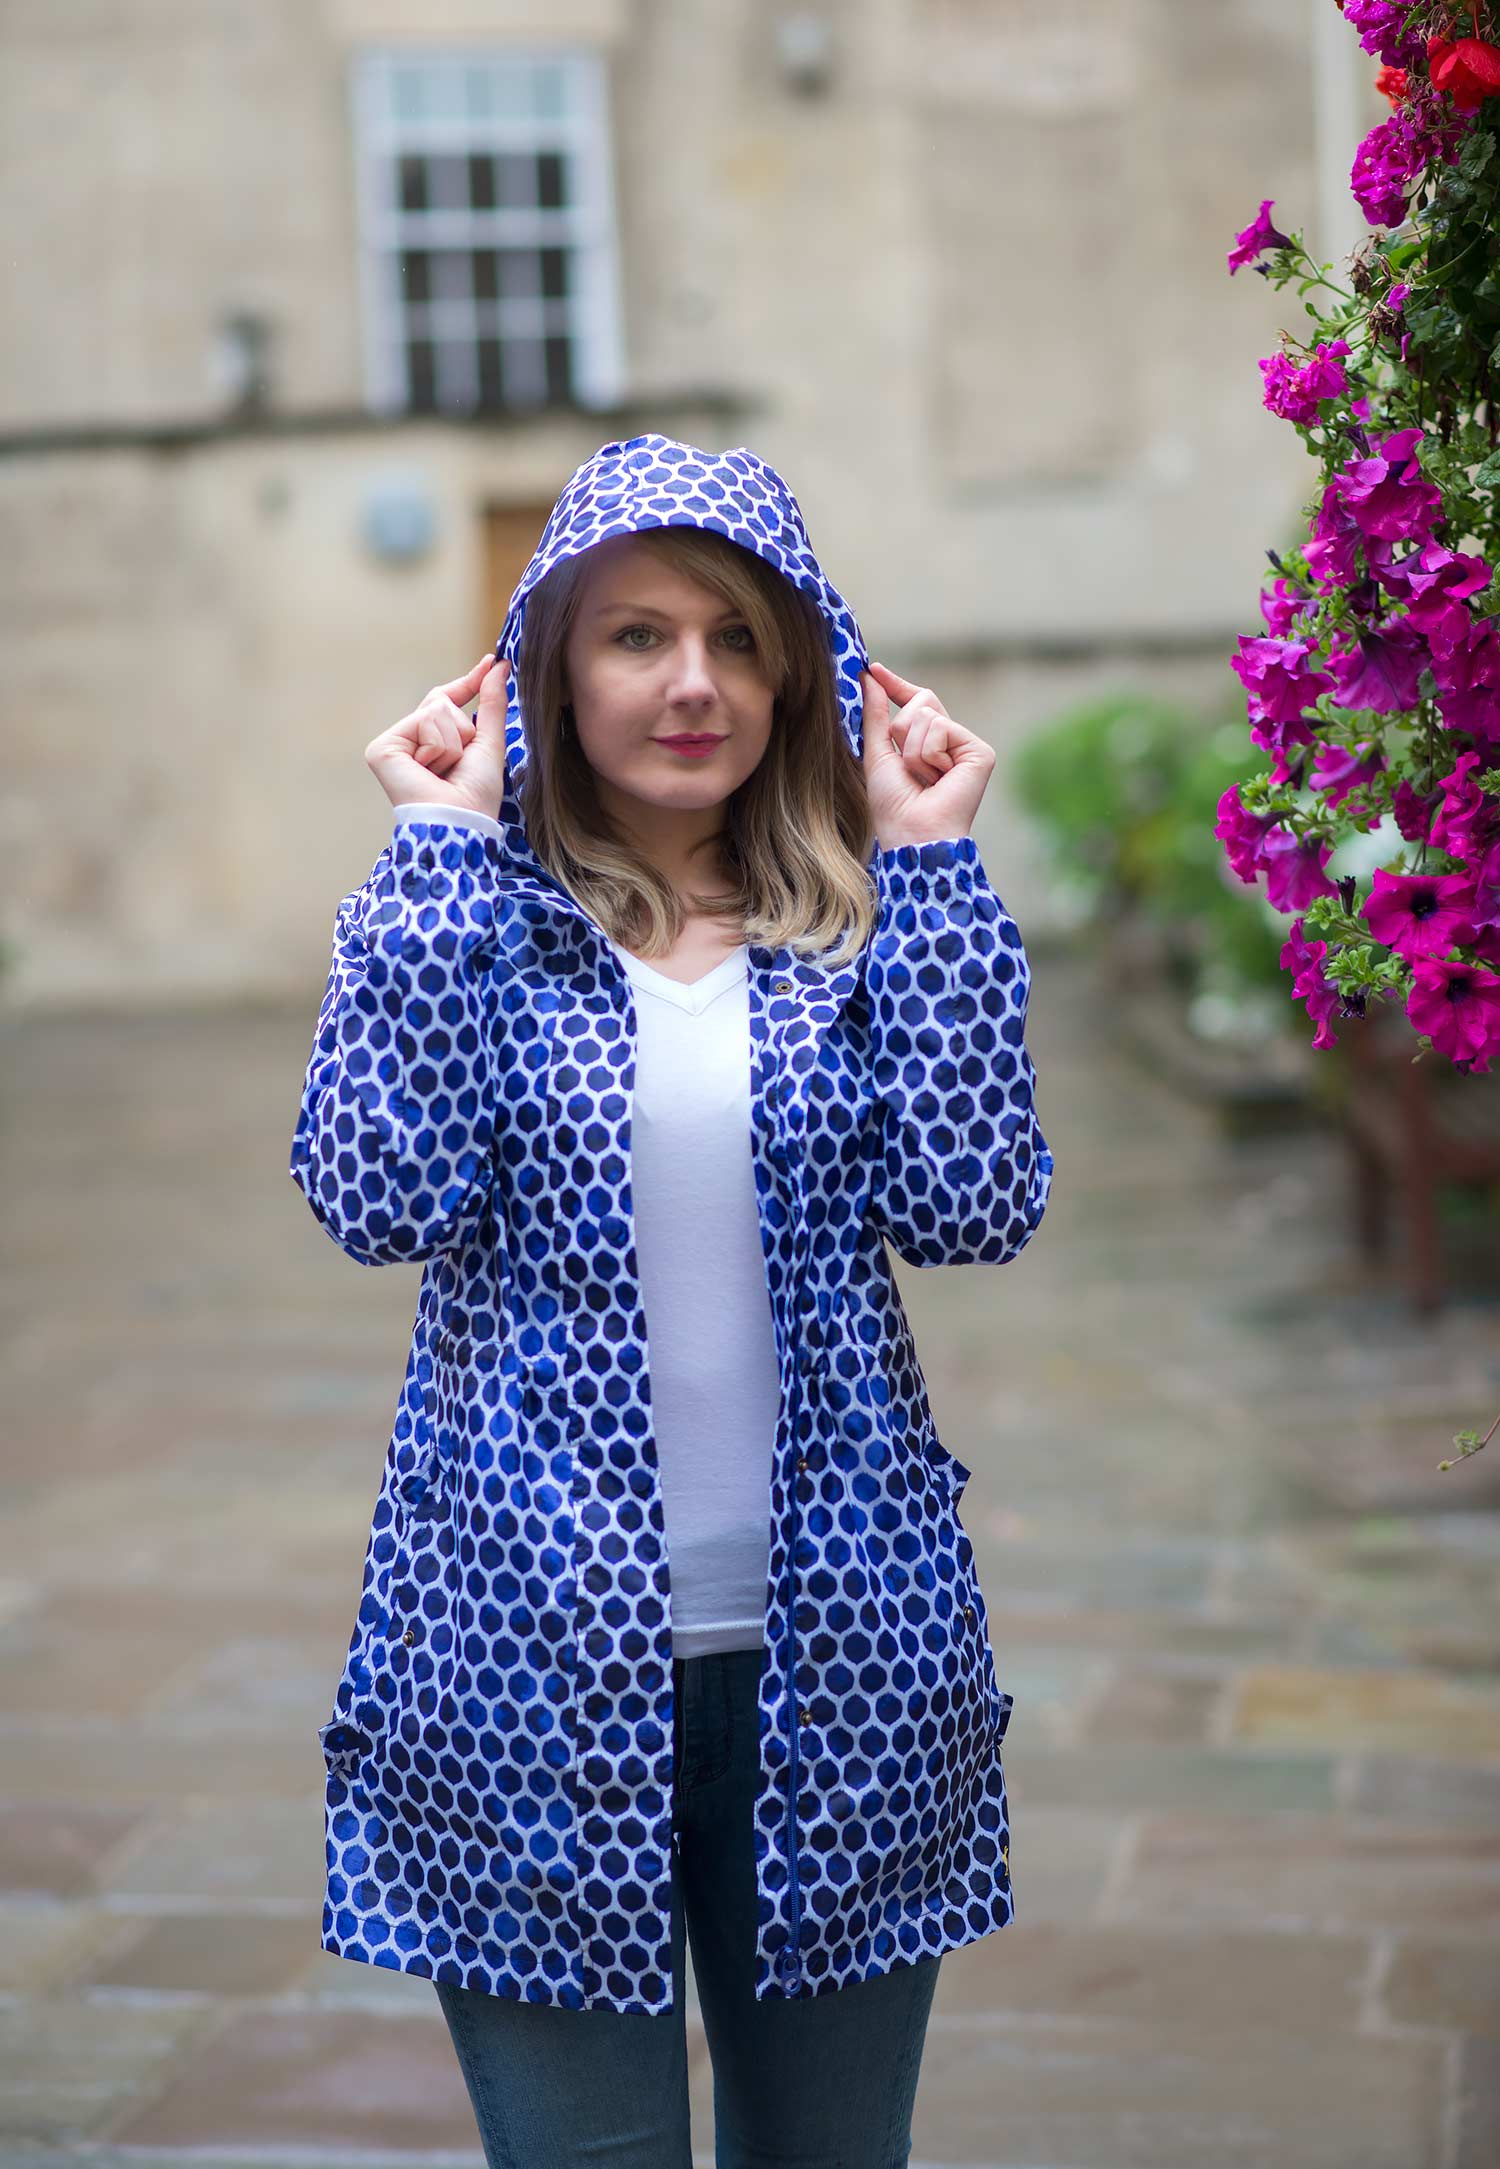 Joules Go Lightly Waterproof Packaway Parka Outfit